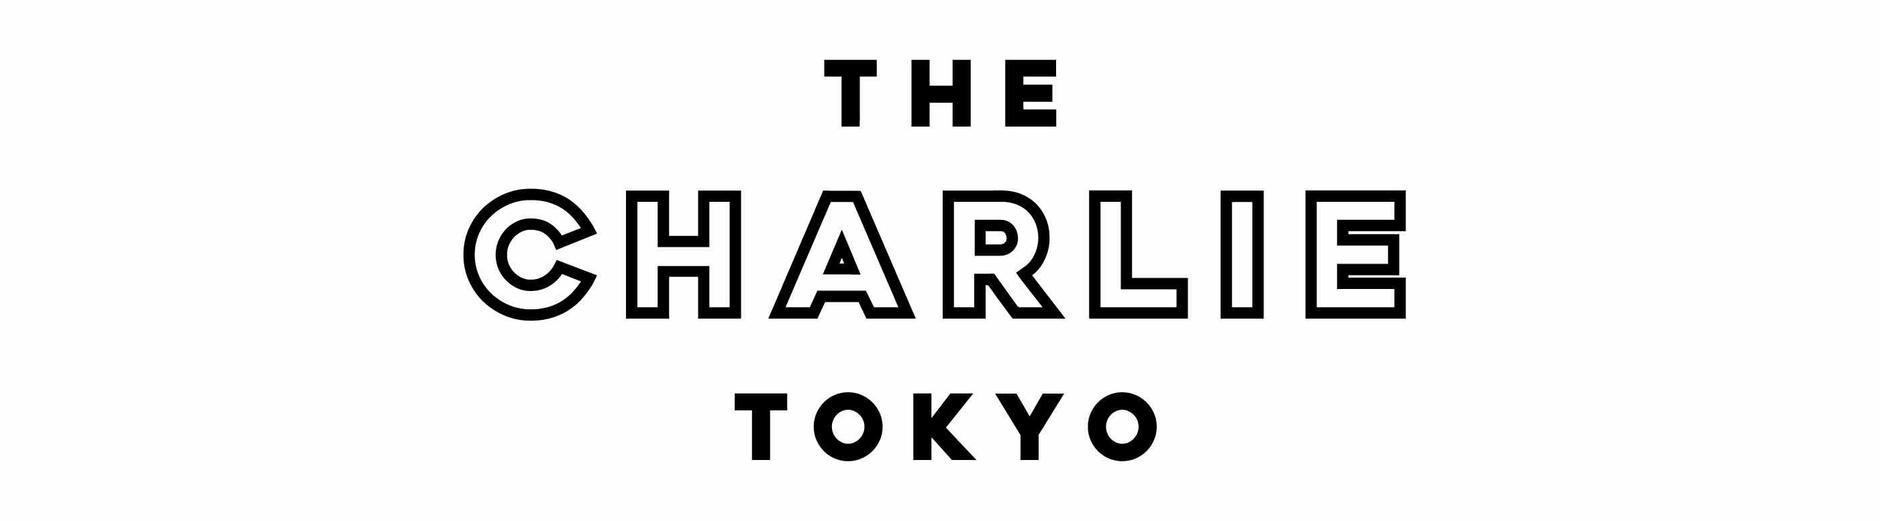 THE CHARLIE TOKYO